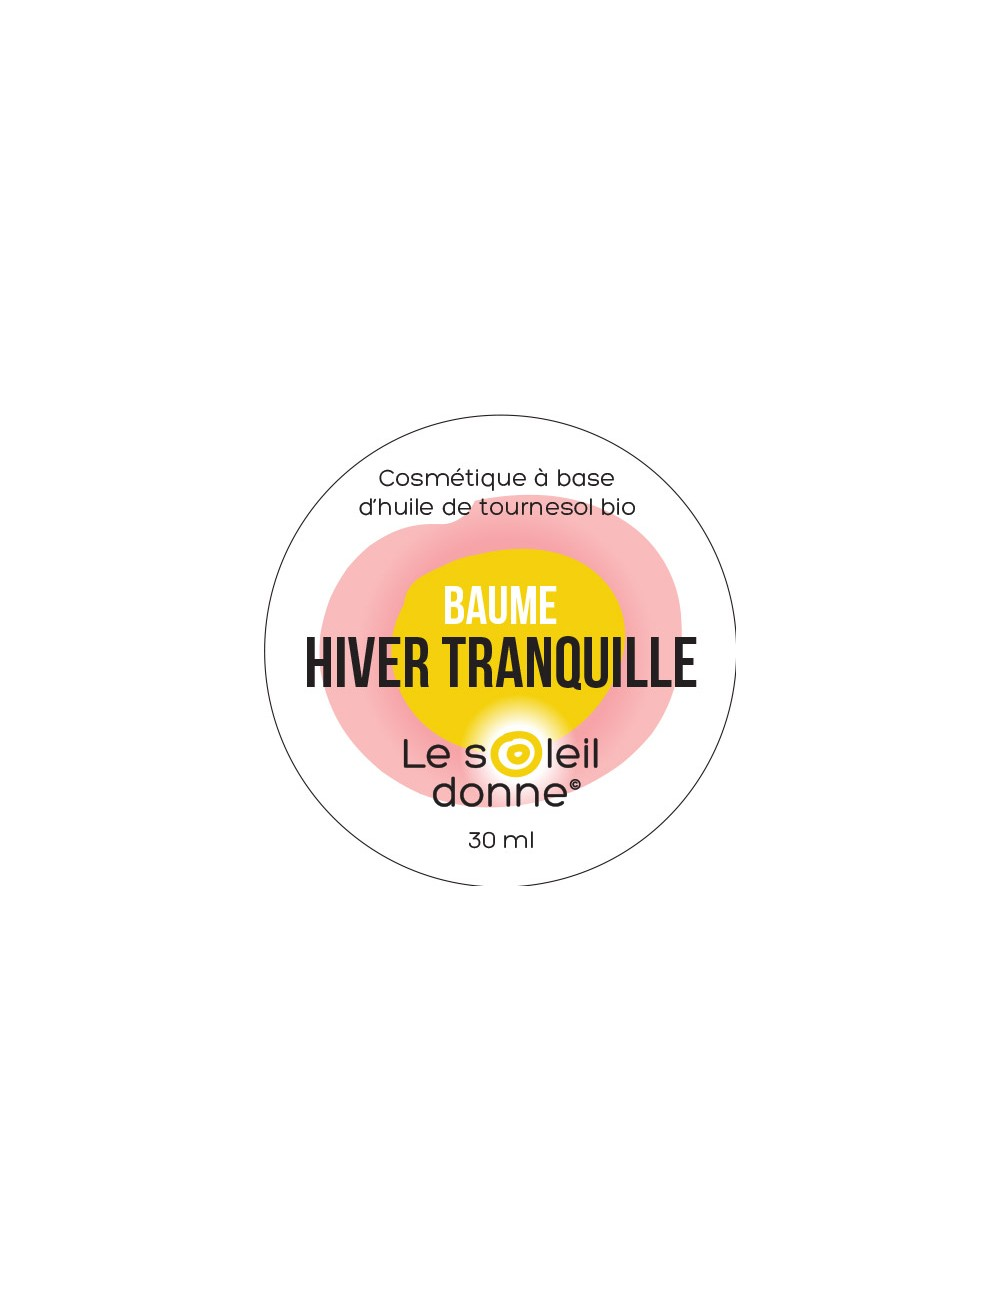 Baume hiver tranquille 30ml